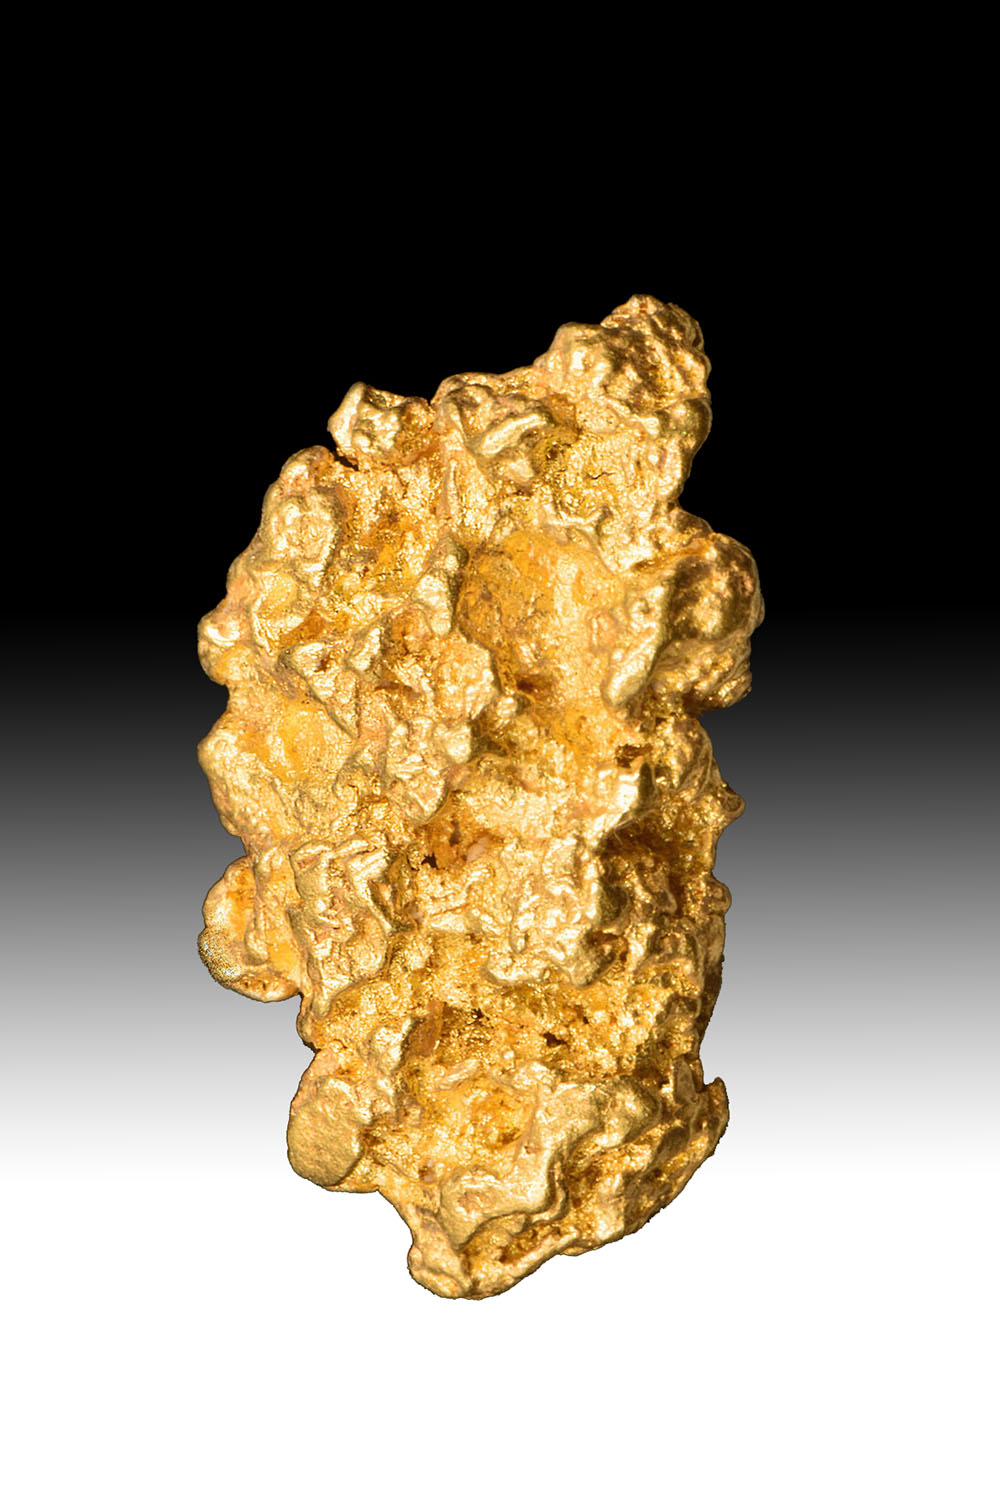 High Purity - Native Australian Gold Nugget